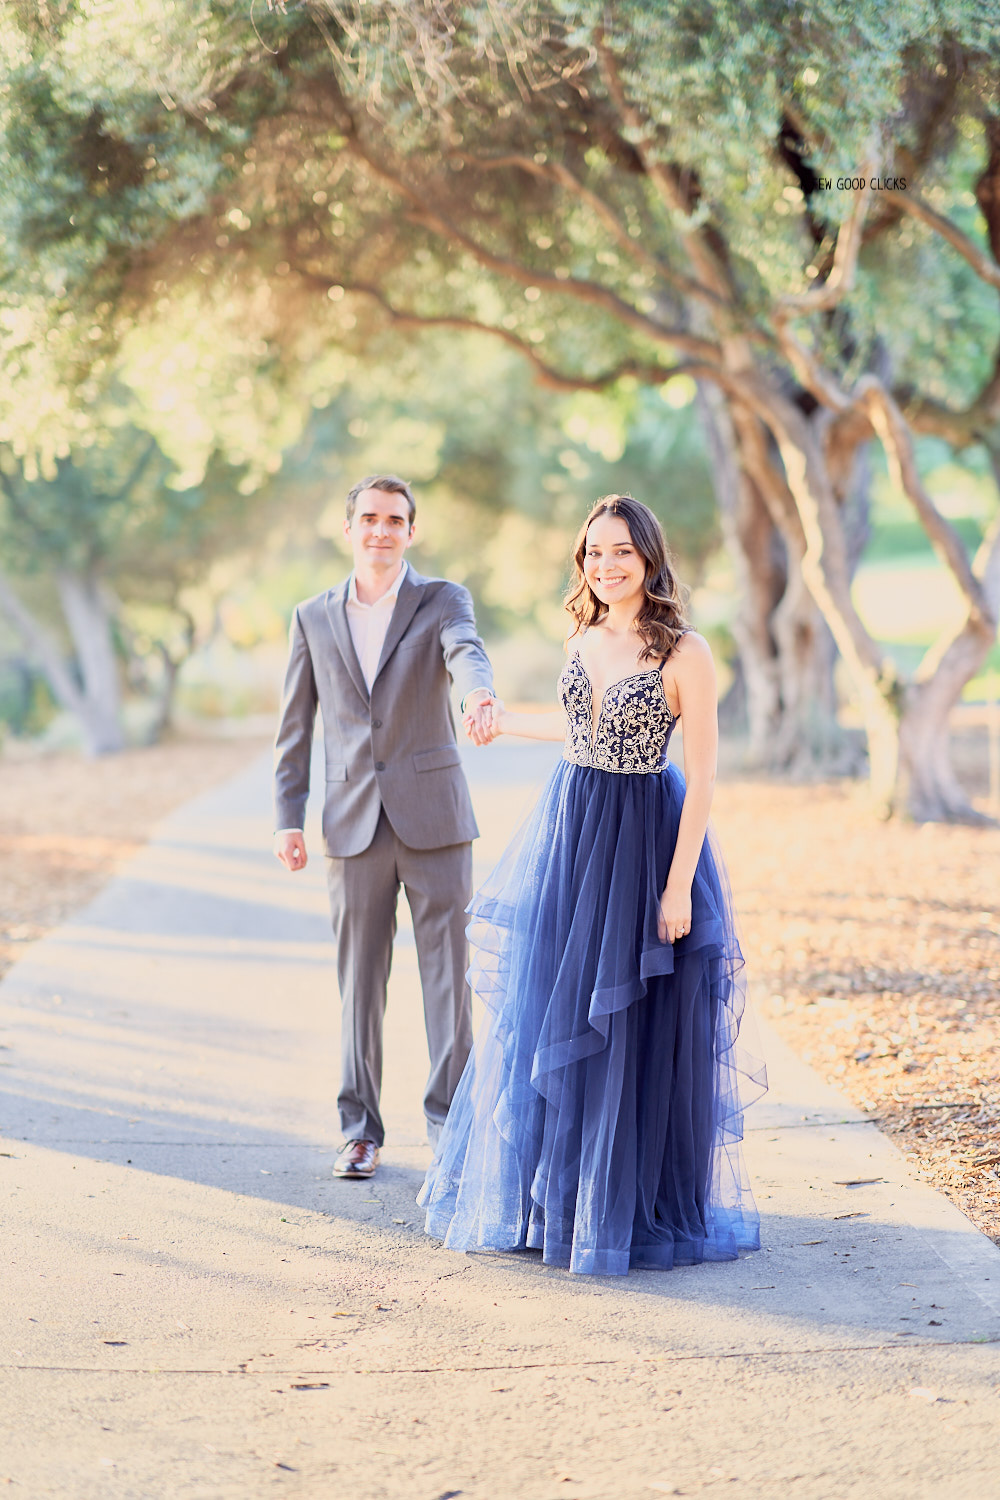 couples-photo-shoot-bay-area-location-photography-by-afewgoodclicks